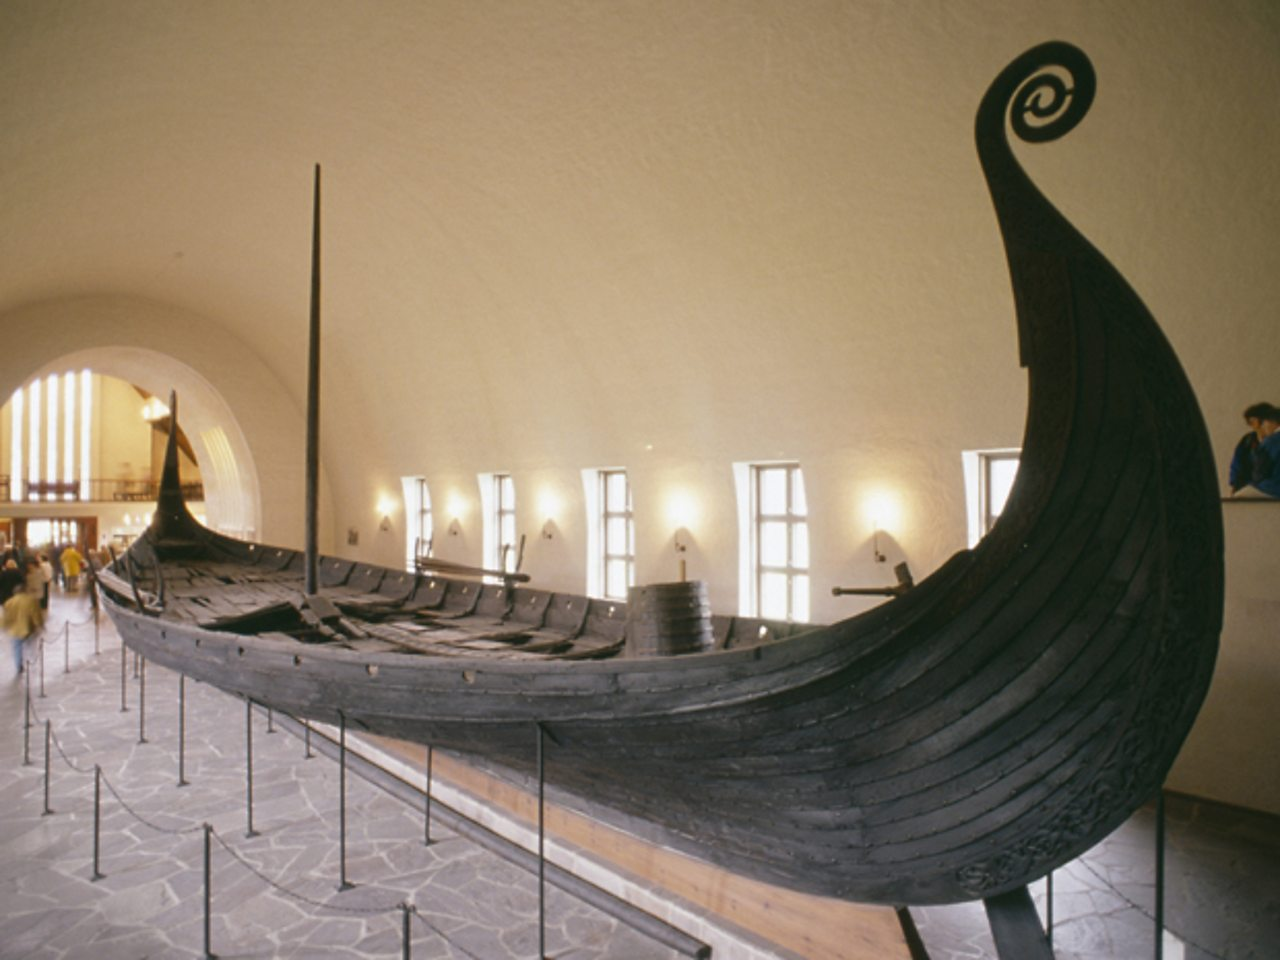 This Viking longboat, known as the Oseberg ship, was unearthed at a burial site in 1904 and is now on display at a museum in Oslo, Norway. Vikings would sail across open oceans in longboats, which were specifically designed to navigate both deep and shallow waters.